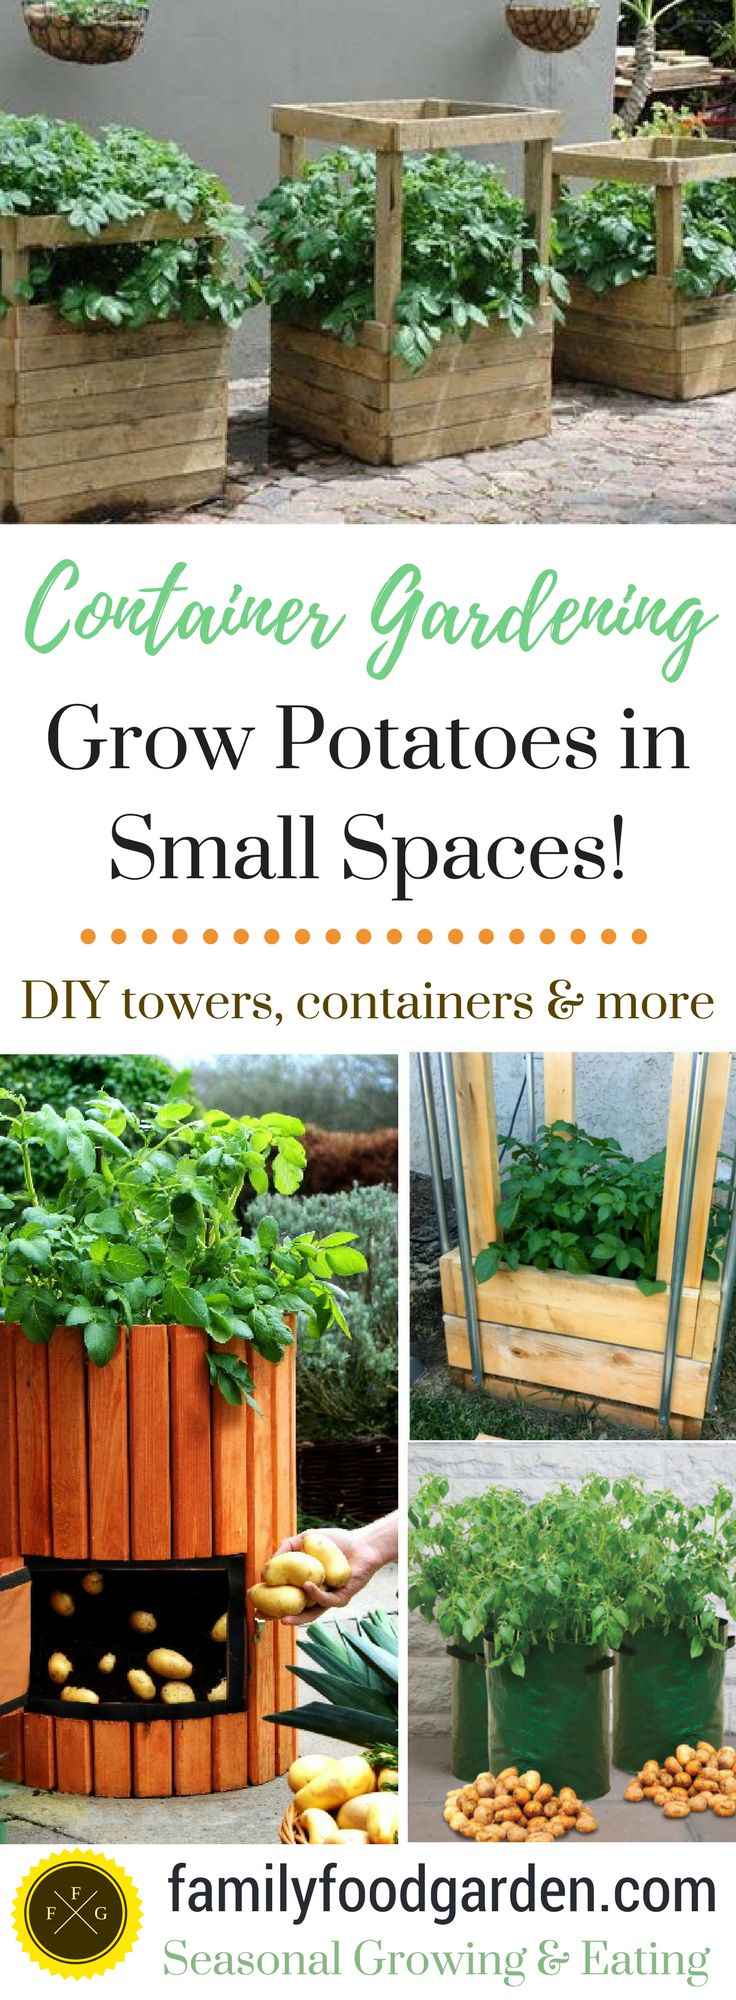 Most people love potatoes but it's definitely a crop that can take up lots of garden space. Luckily there's been a surge of creative container ideas for growing your potatoes vertically instead of in ground. Making use of vertical space is perfect for potatoes because as the plants grow taller and you add more soil & depth,...